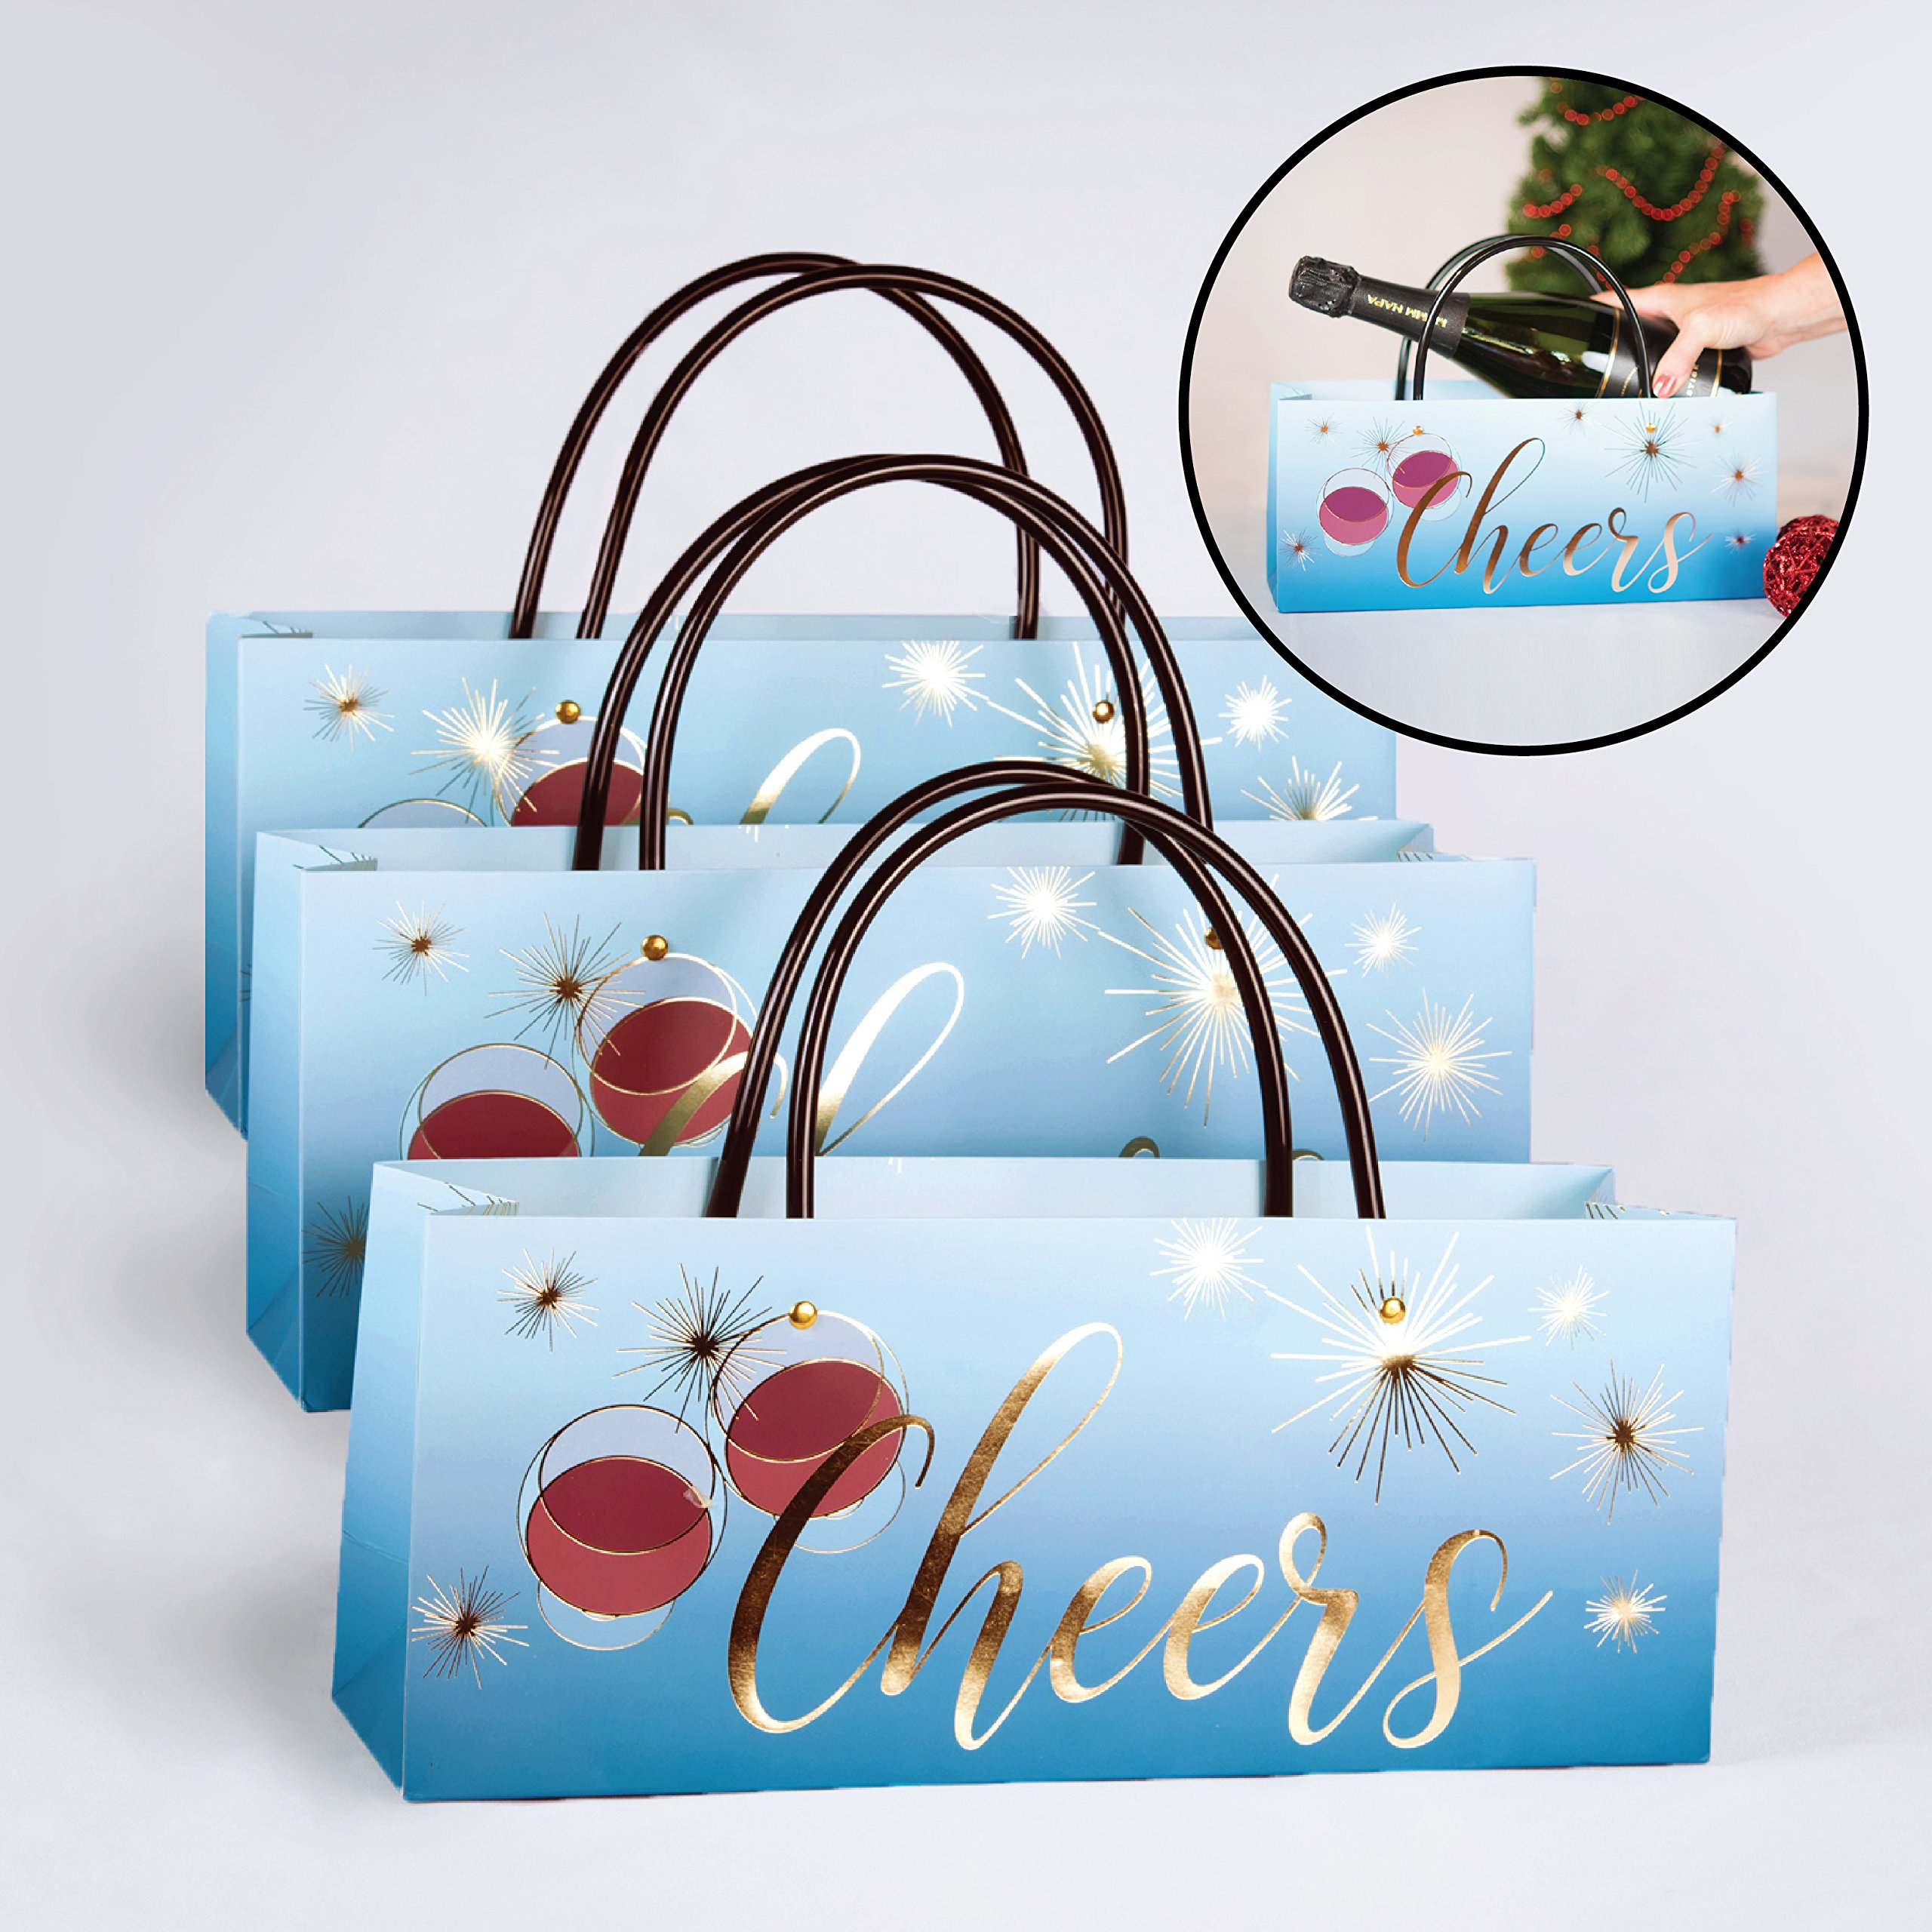 Cheers Wine Gift Bags Set of 3 - High Quality with Handles